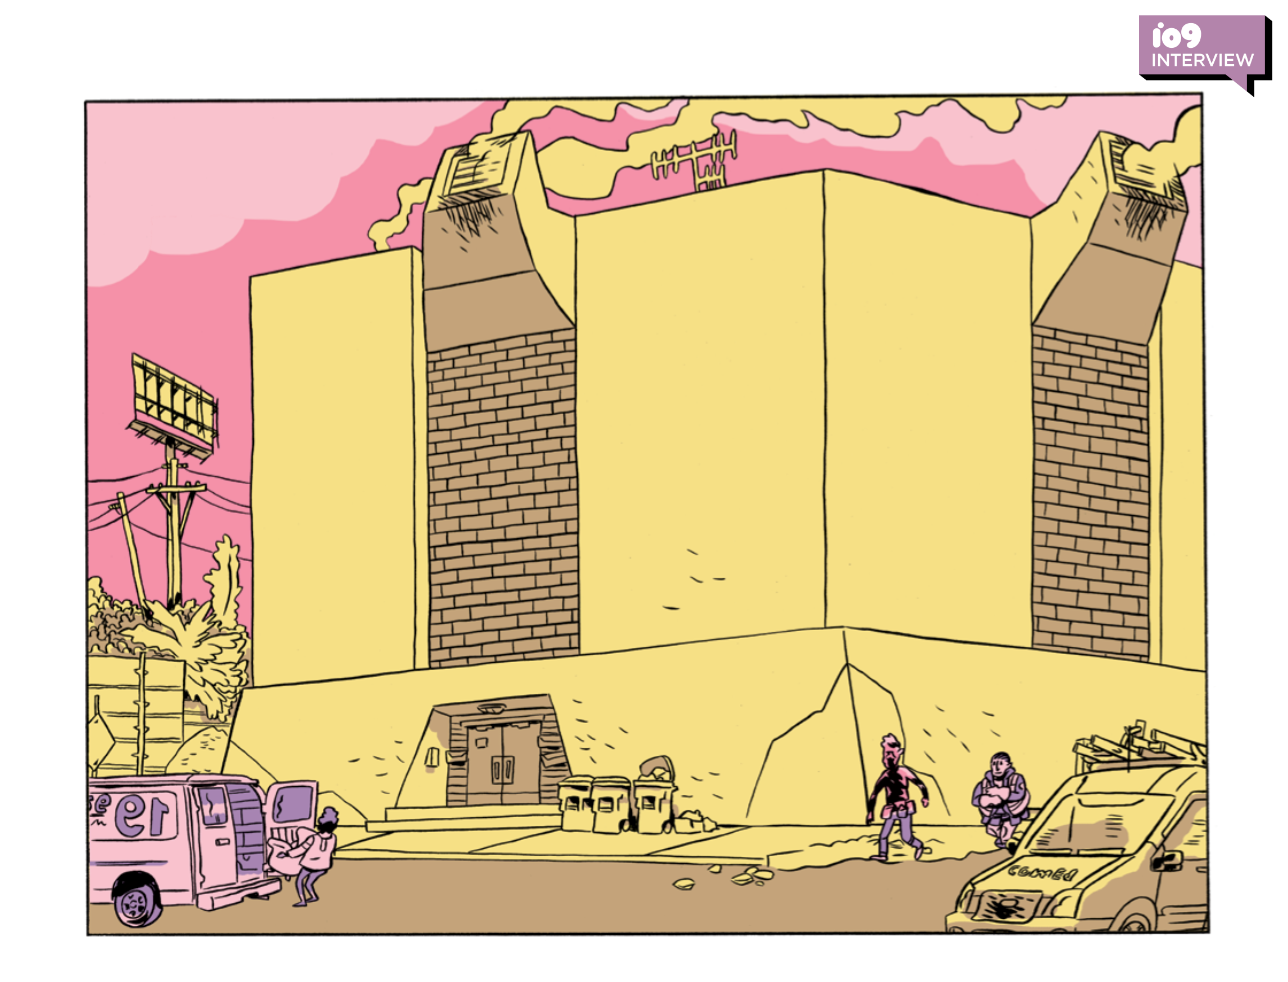 Graphic Novel BTTM FDRS Digs Into The Horrors Of Gentrification